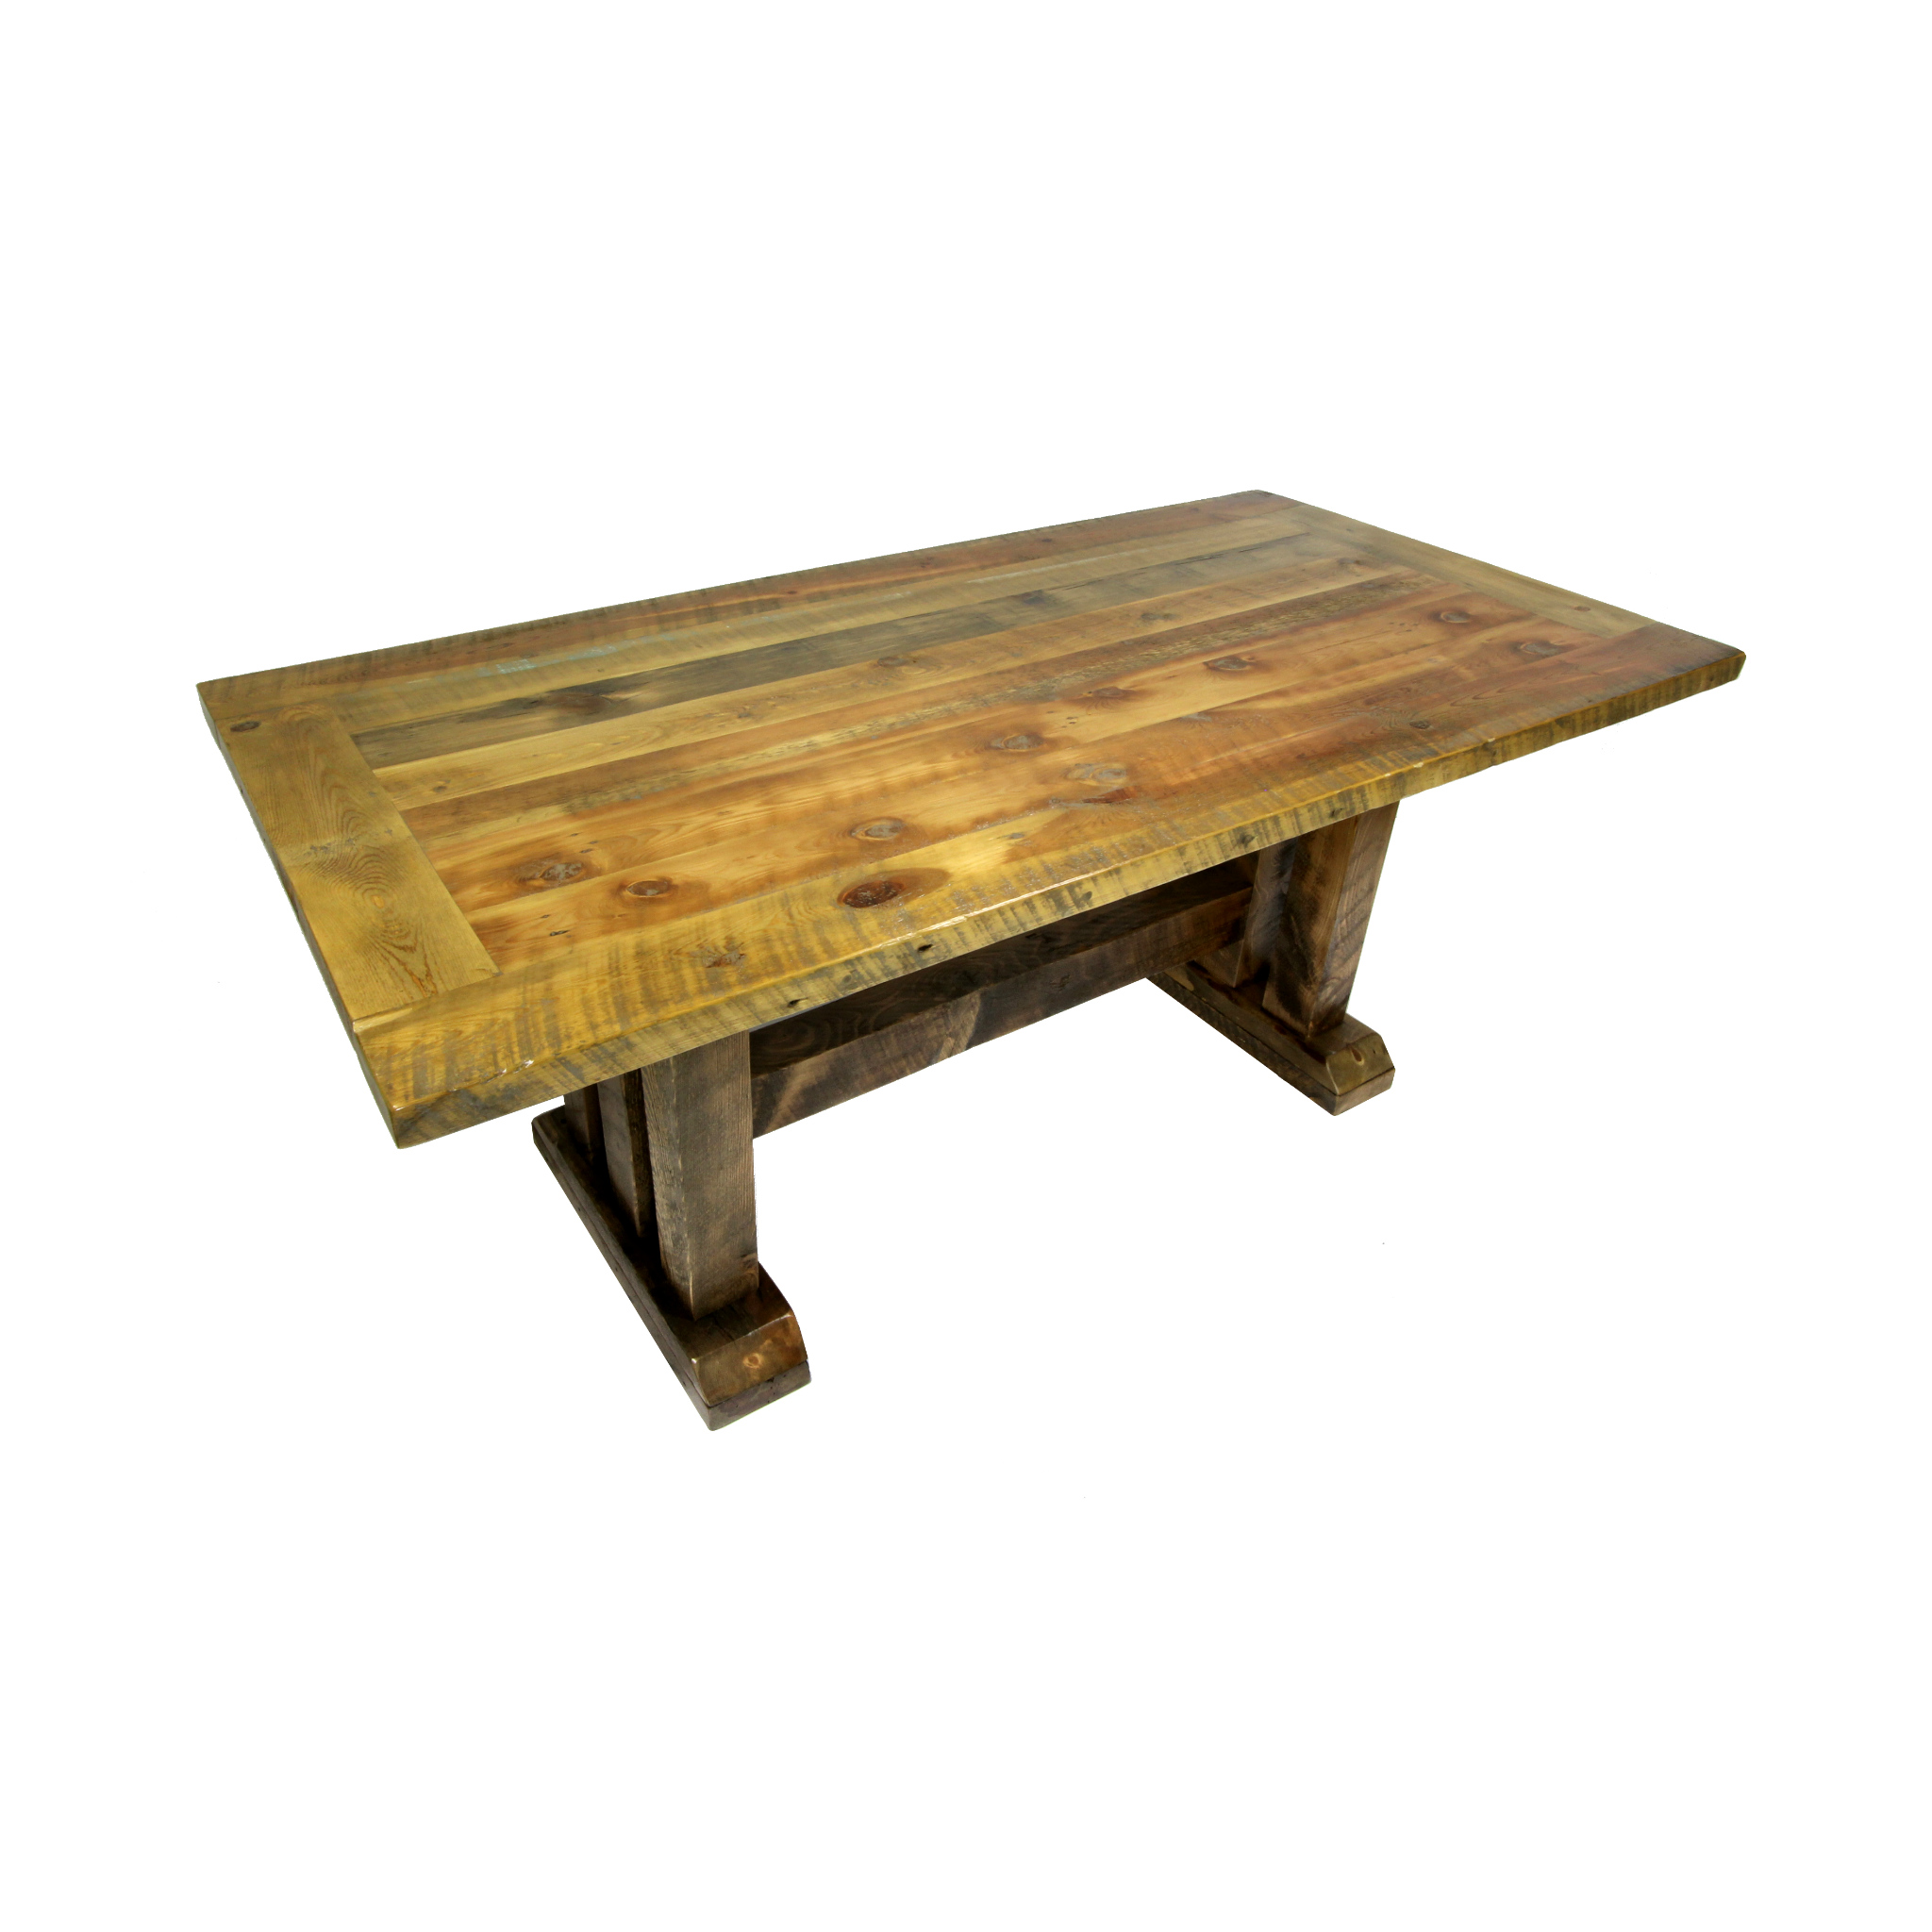 TABLE-DINING-TRESTLE-BARNWOOD.jpg